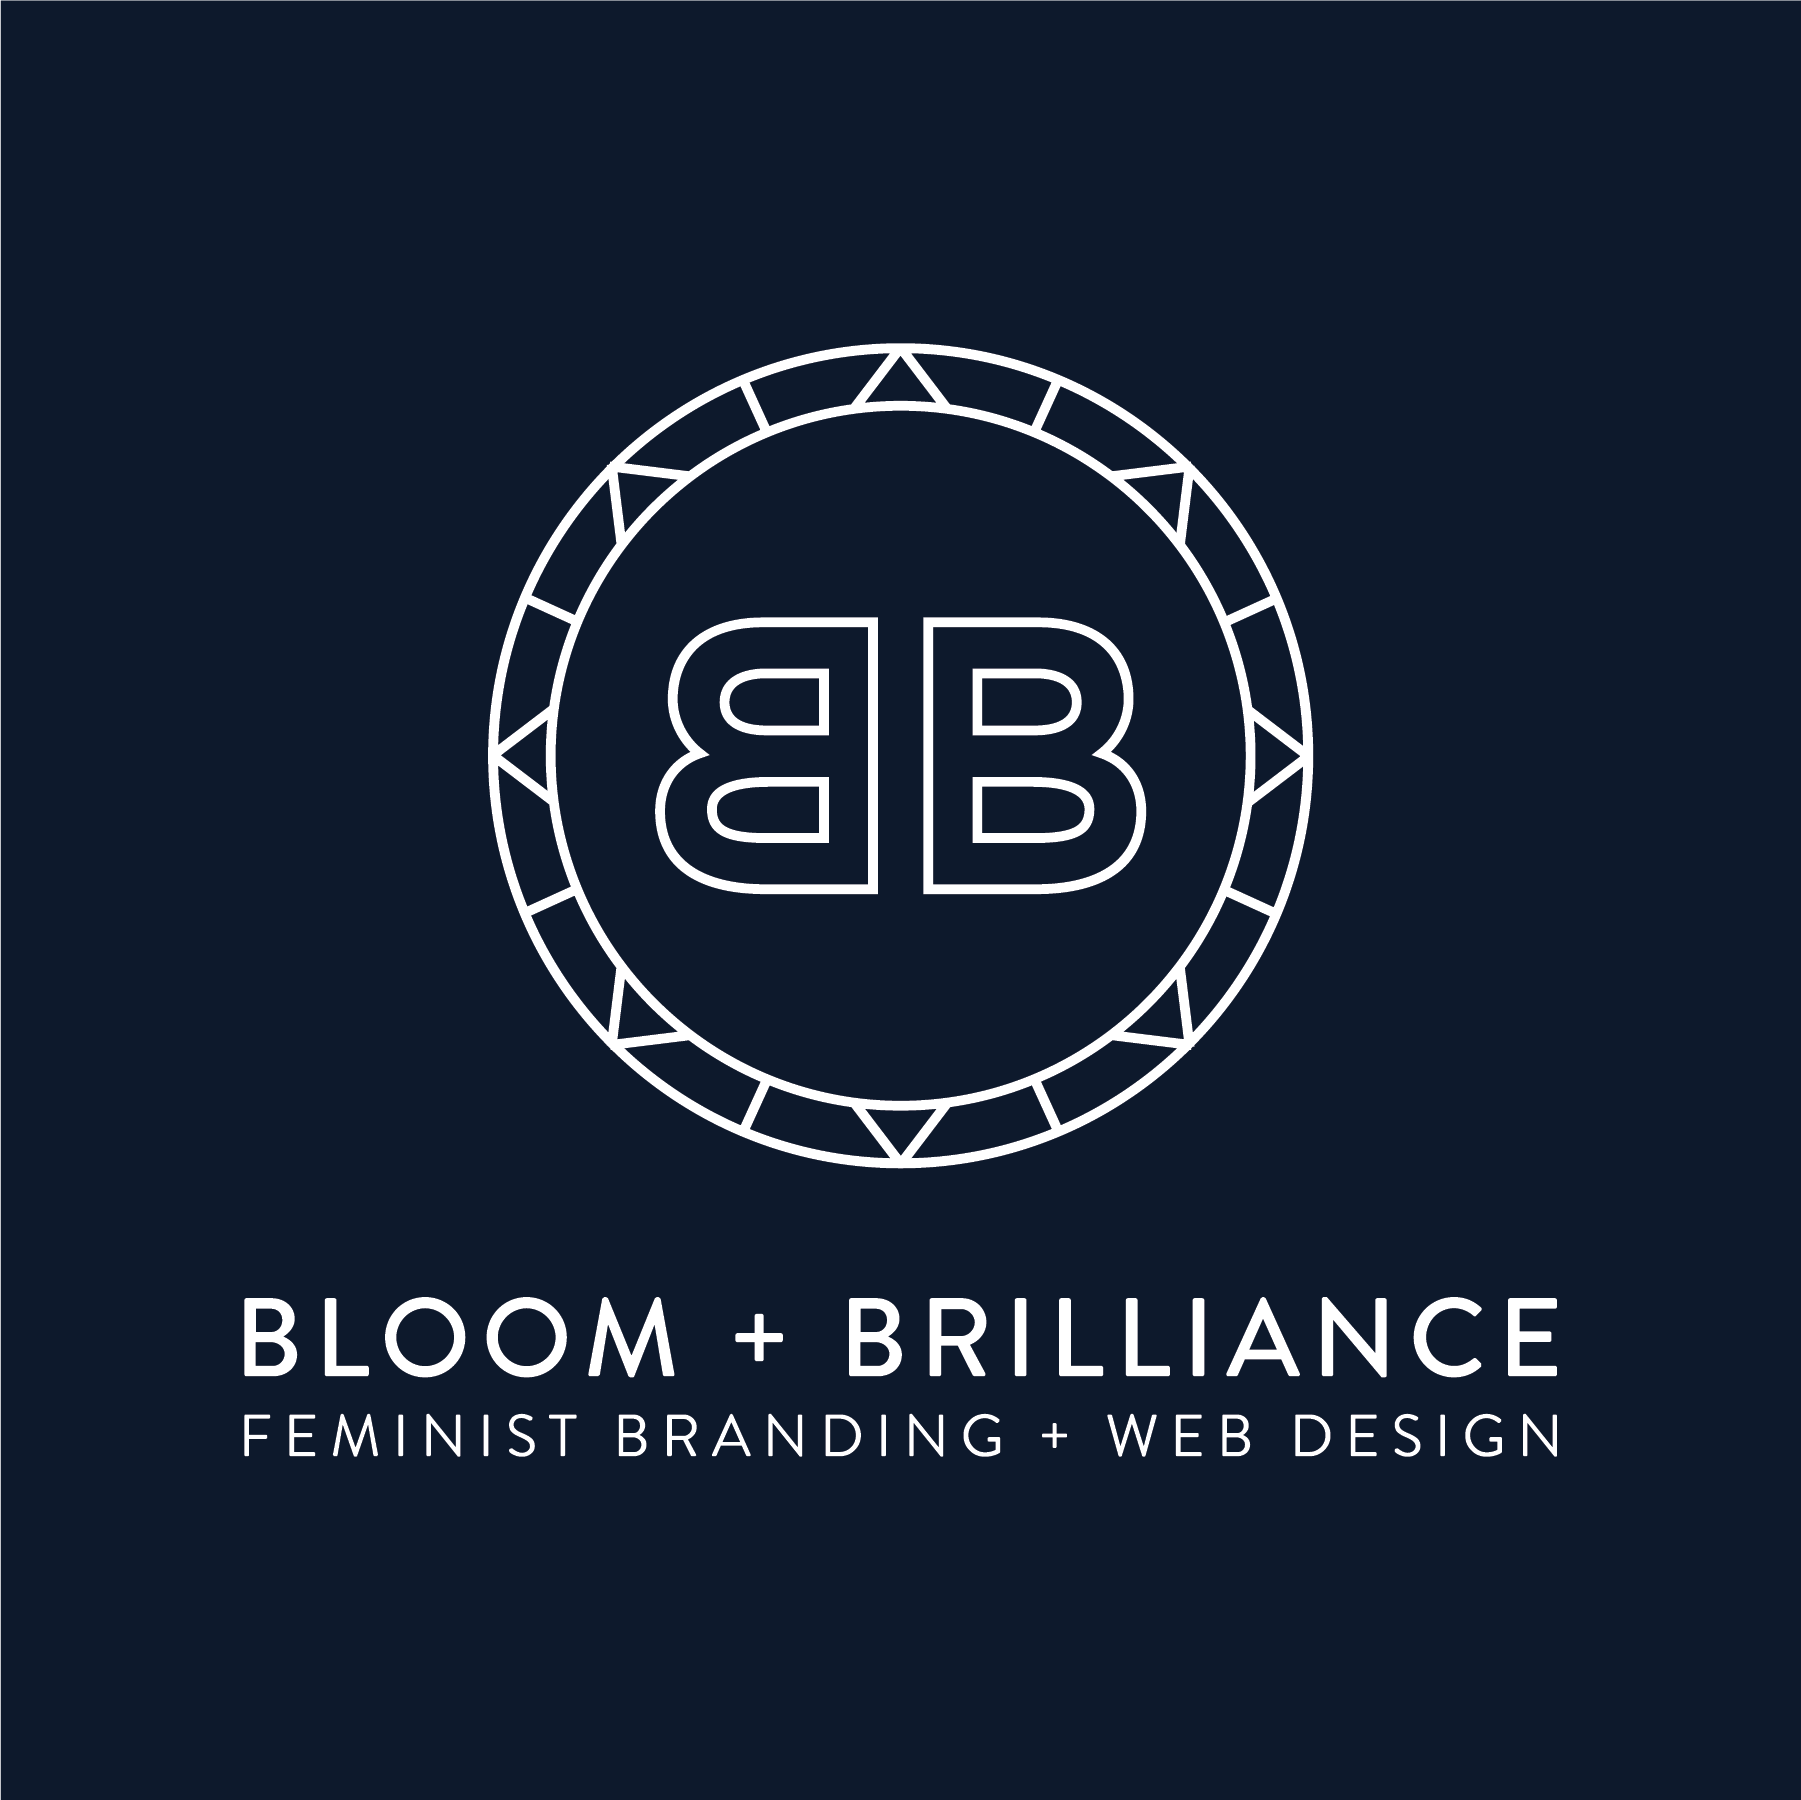 Bloom + Brilliance